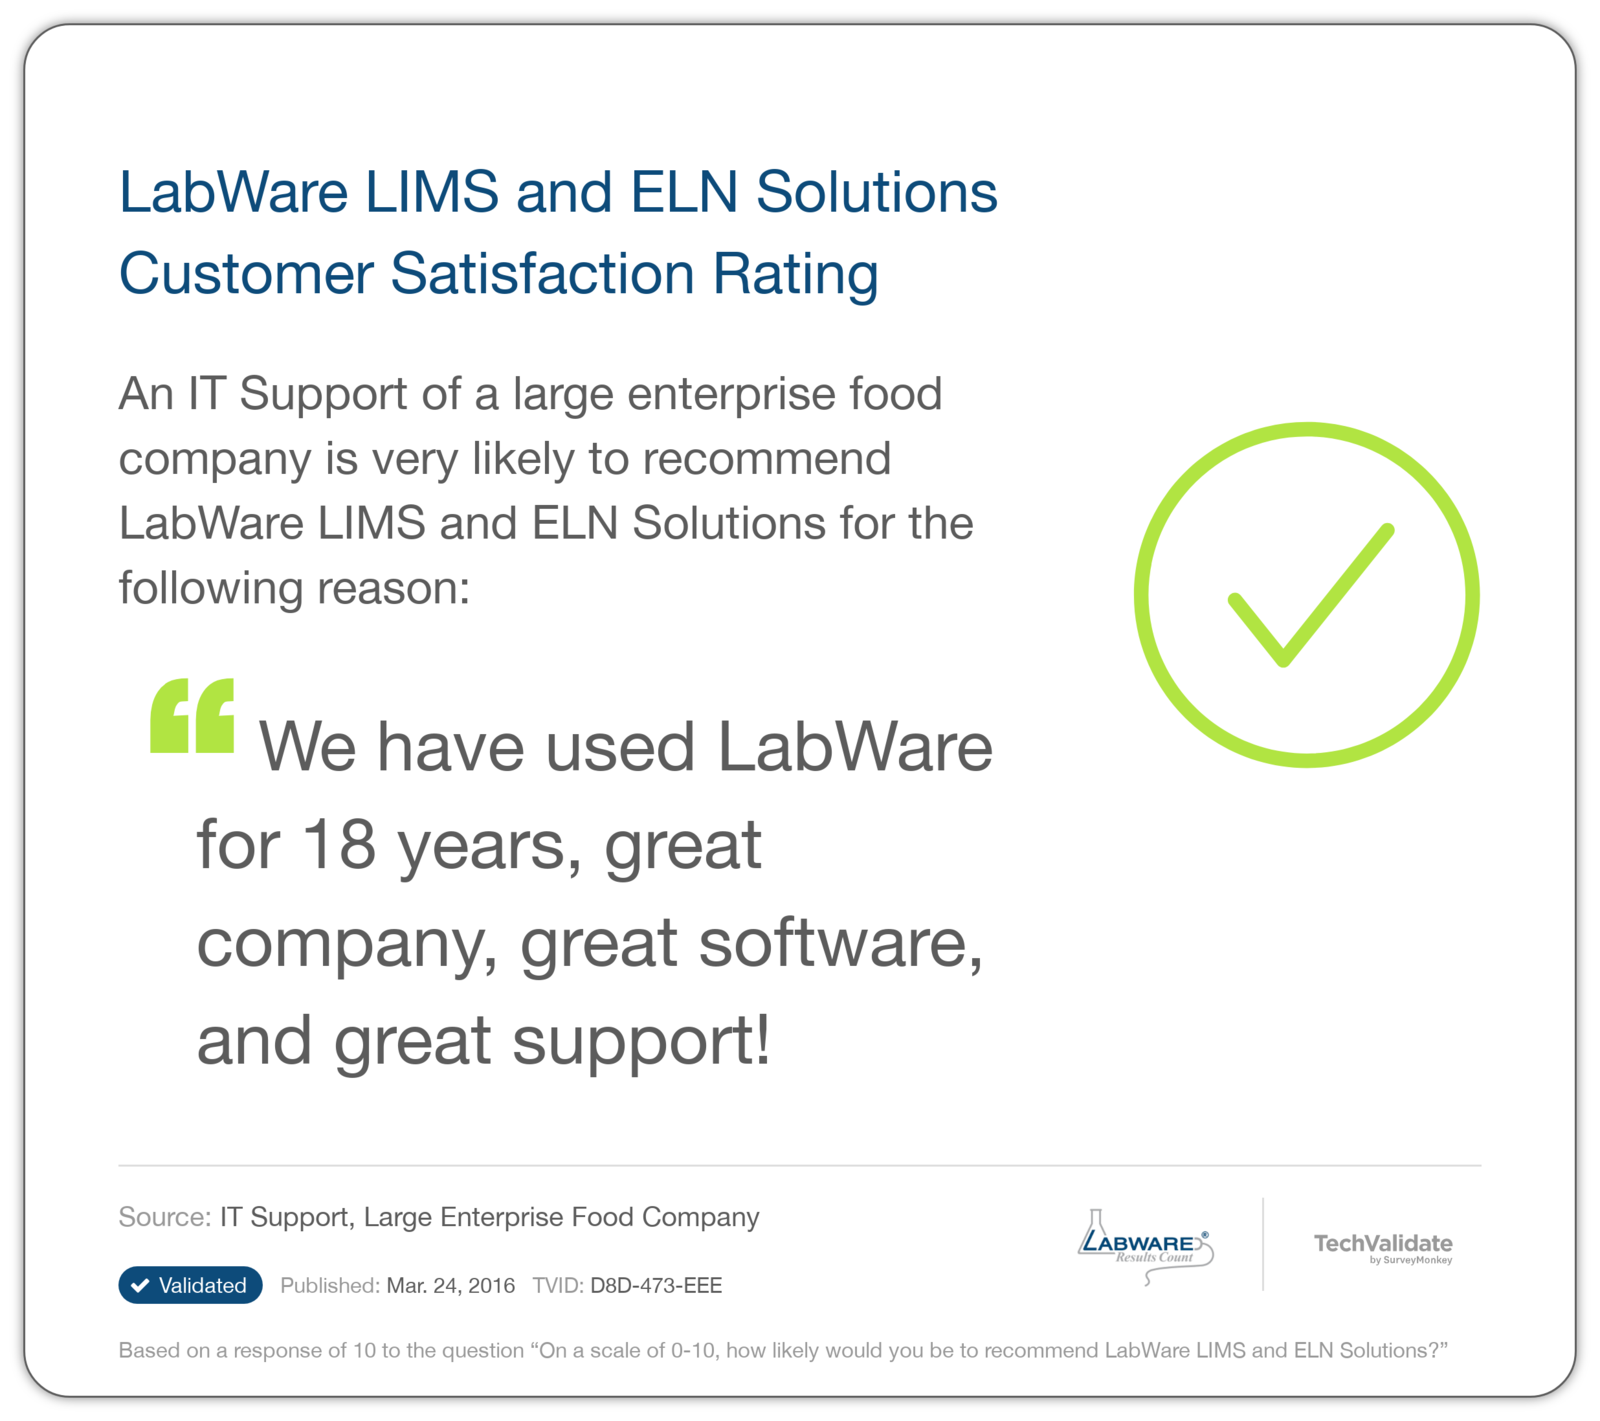 LabWare LIMS and ELN Solutions Customer Satisfaction Rating